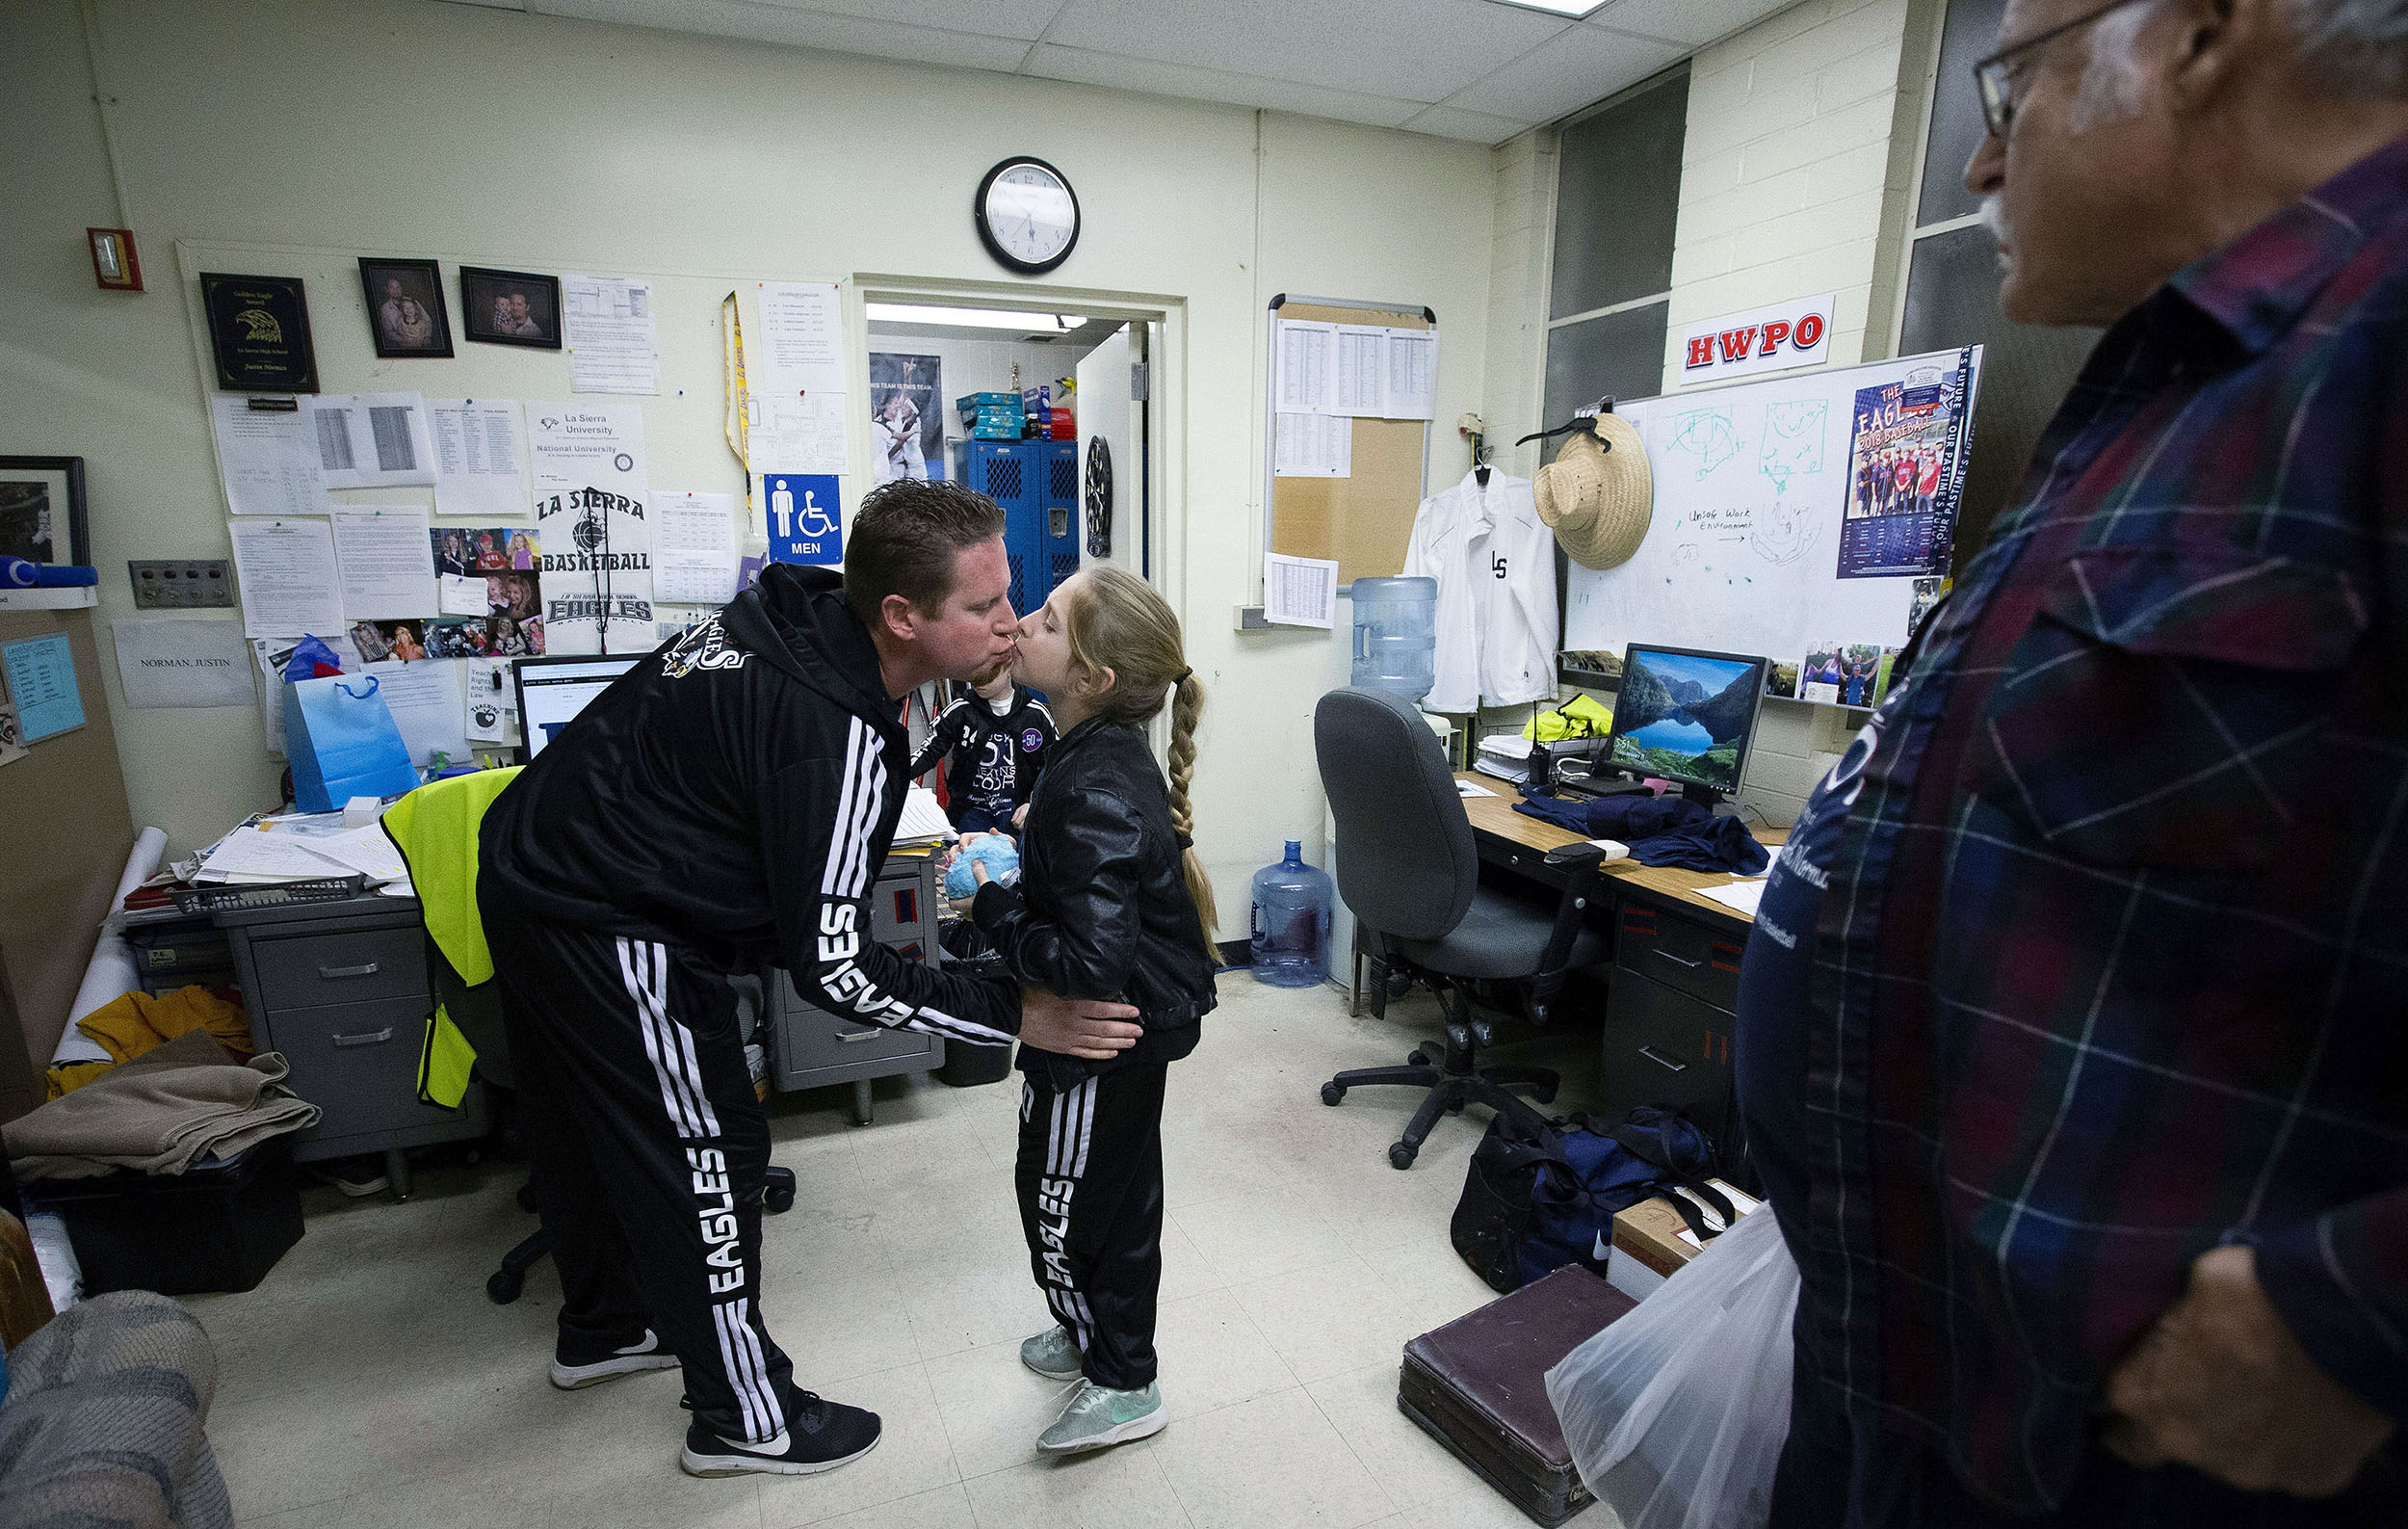 La Sierra boys basketball coach Justin Norman gets a kiss from his daughter Juliya Norman, 9, as grandfather Brian Duffield looks on in Norma's office before returning to the bench to coach the Eagles against Patriot 10 days after the sudden death of his wife, Meagan, at La Sierra High in Riverside on Friday, January 11, 2019.